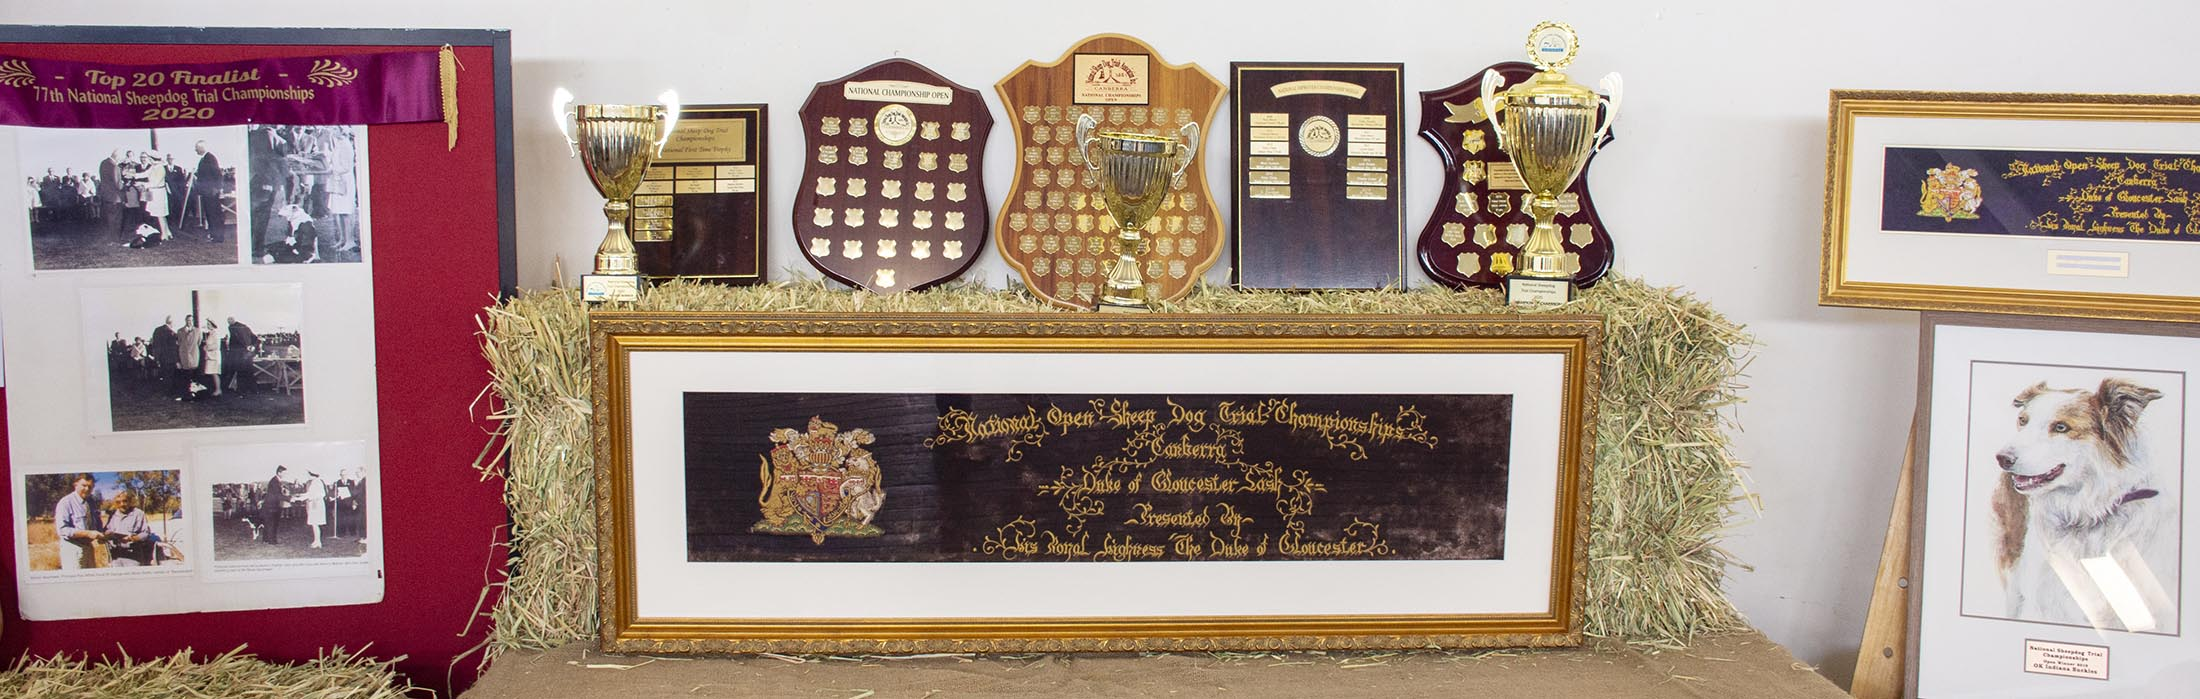 National Sheep Dog Trials Prizes and Trophies